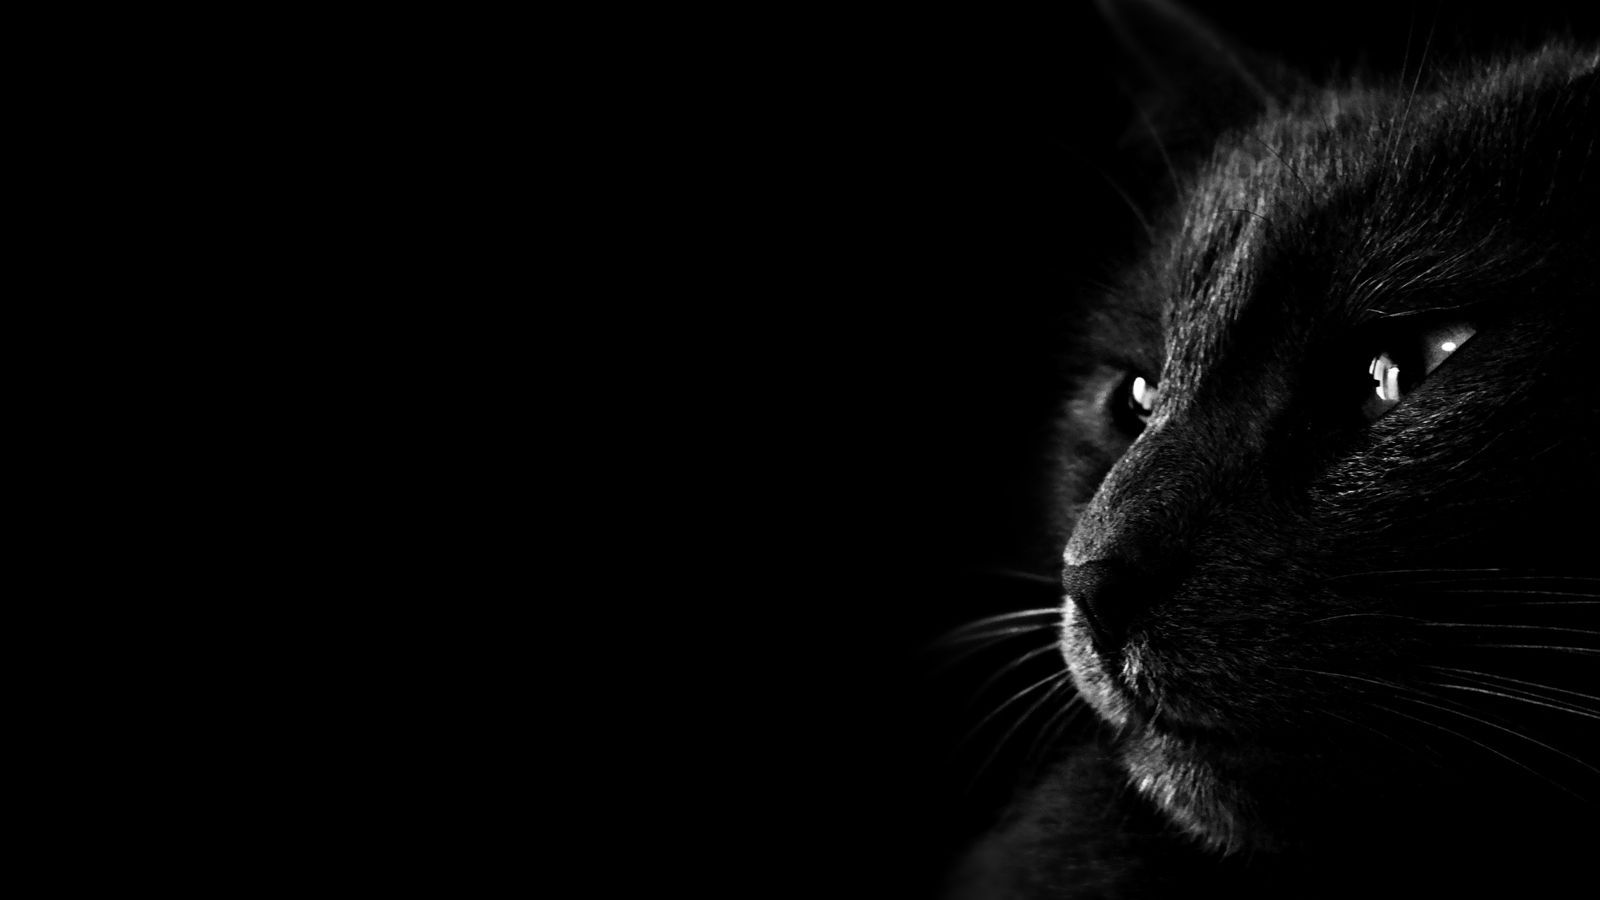 Cat Dark Wallpaper Black Cat Images Cat Wallpaper Cat Dark